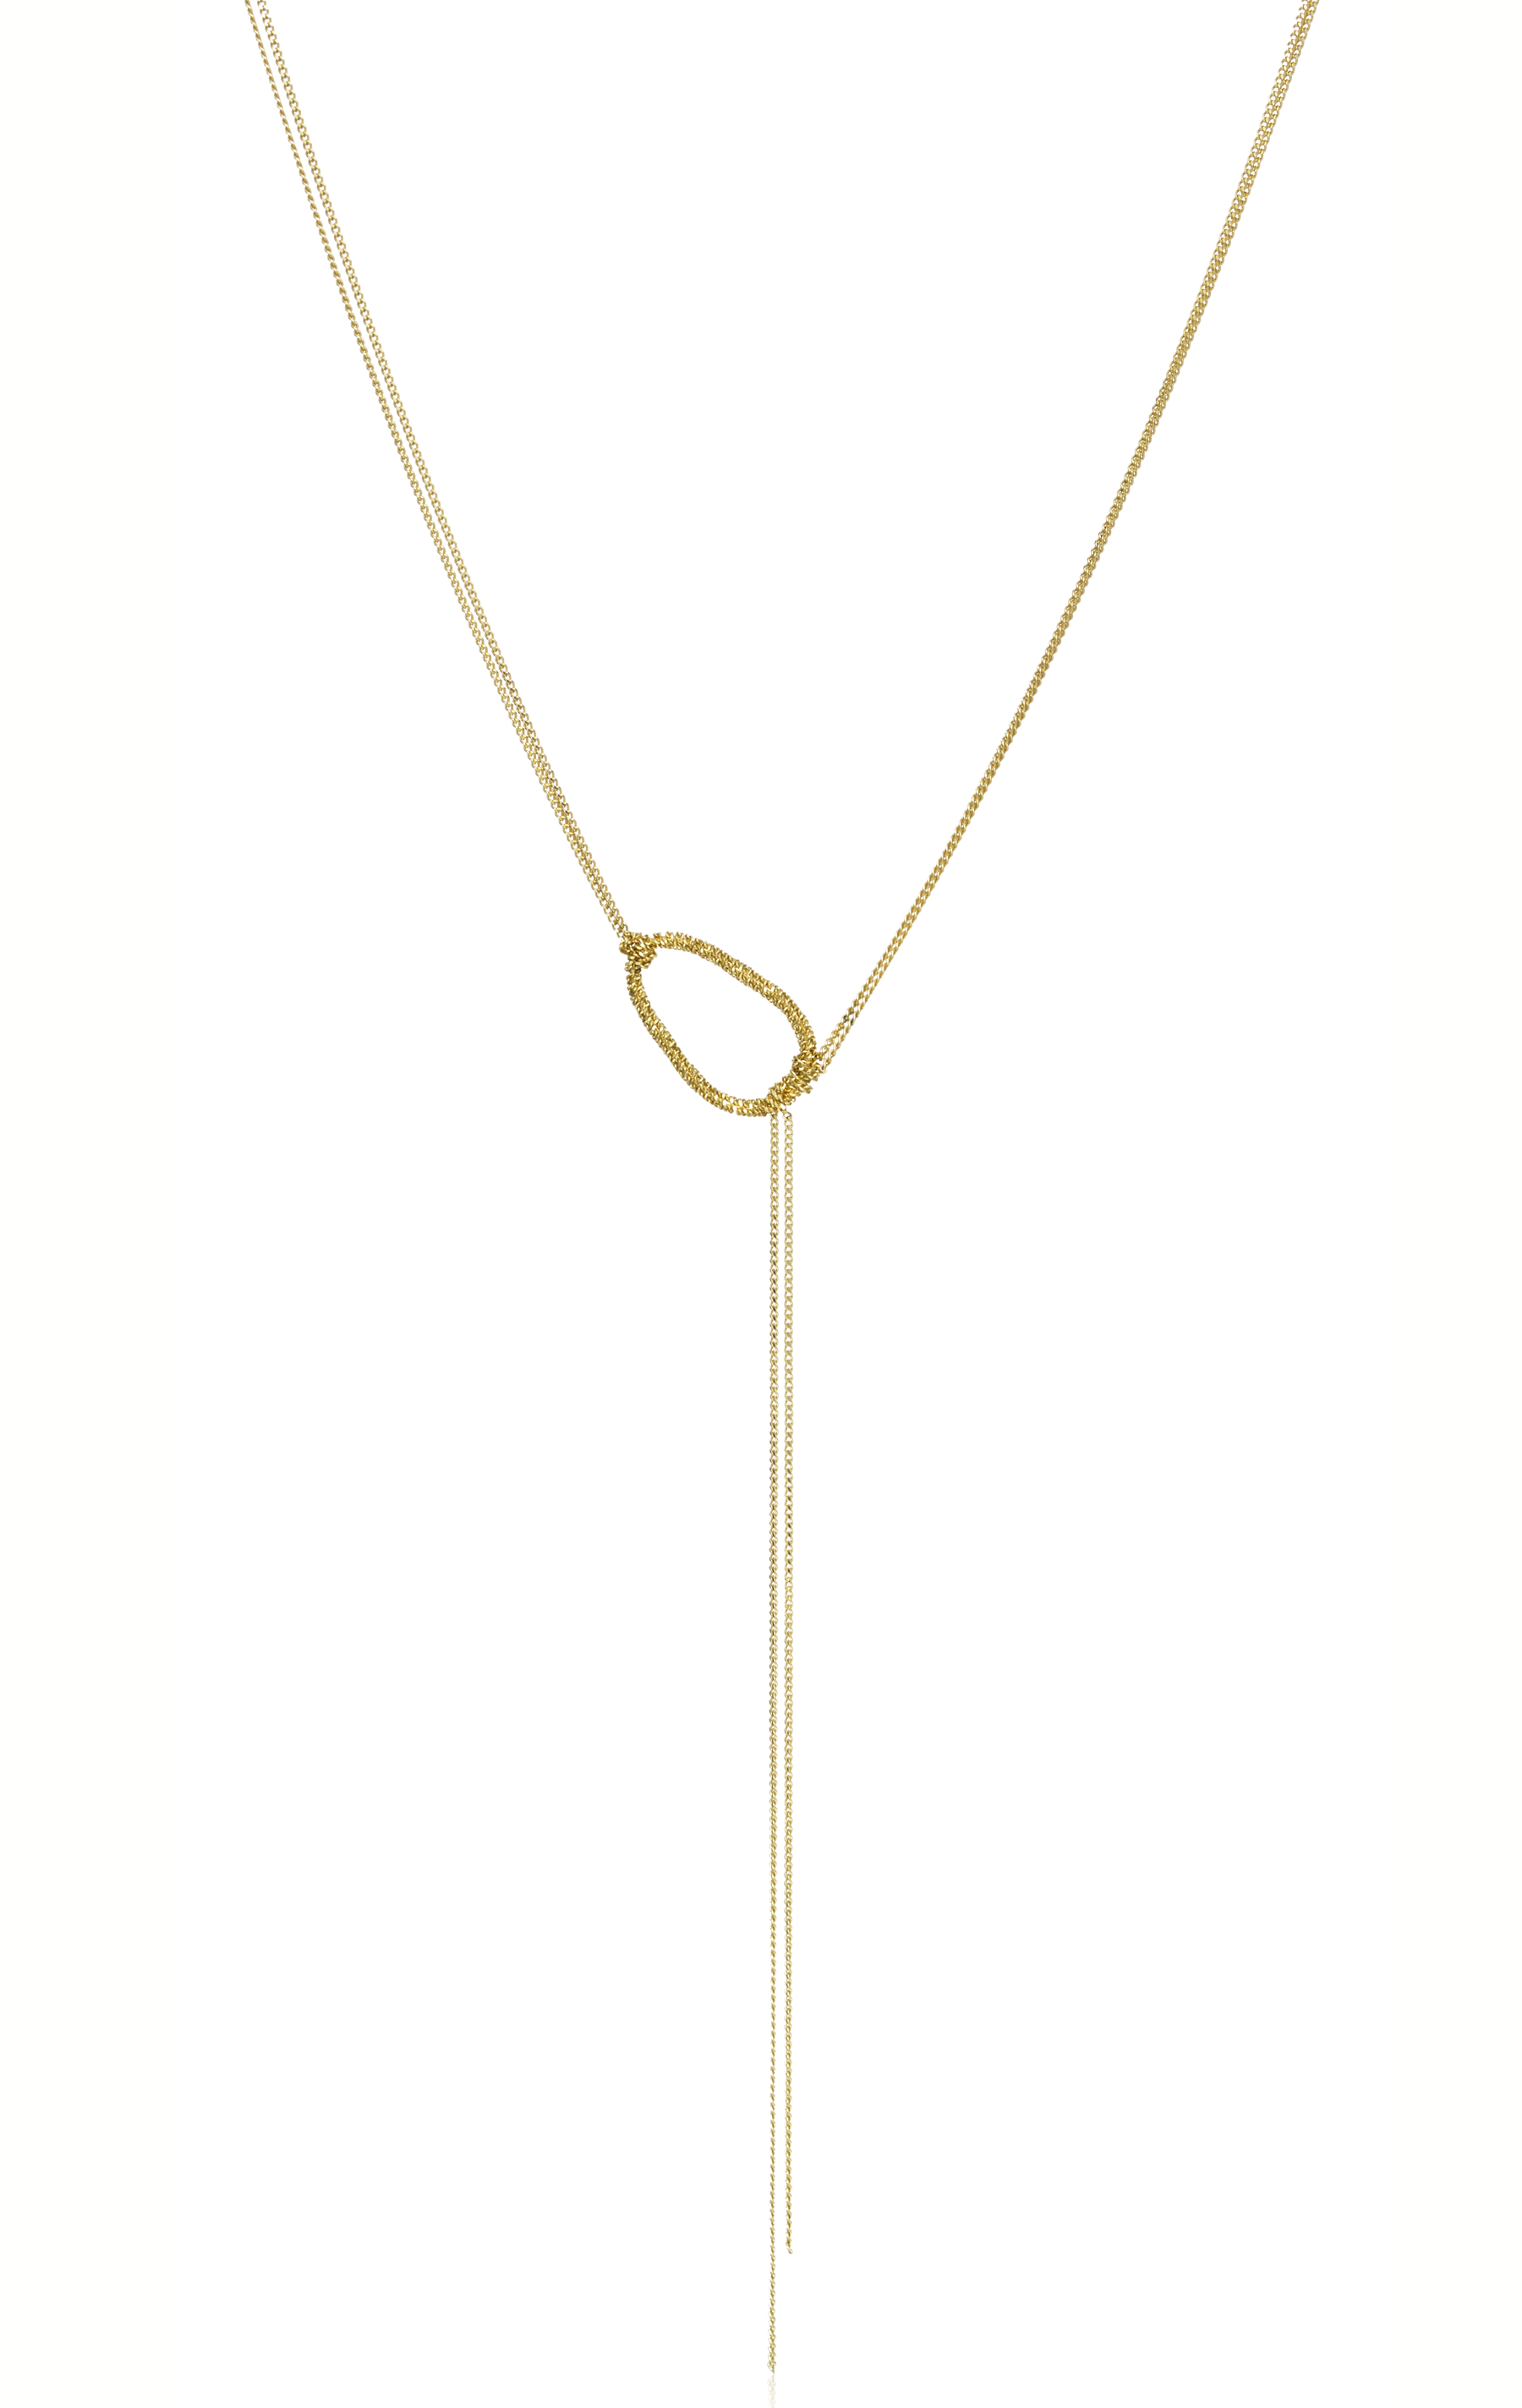 Amali Jewelry knotted lariat necklace | JCK On Your Market